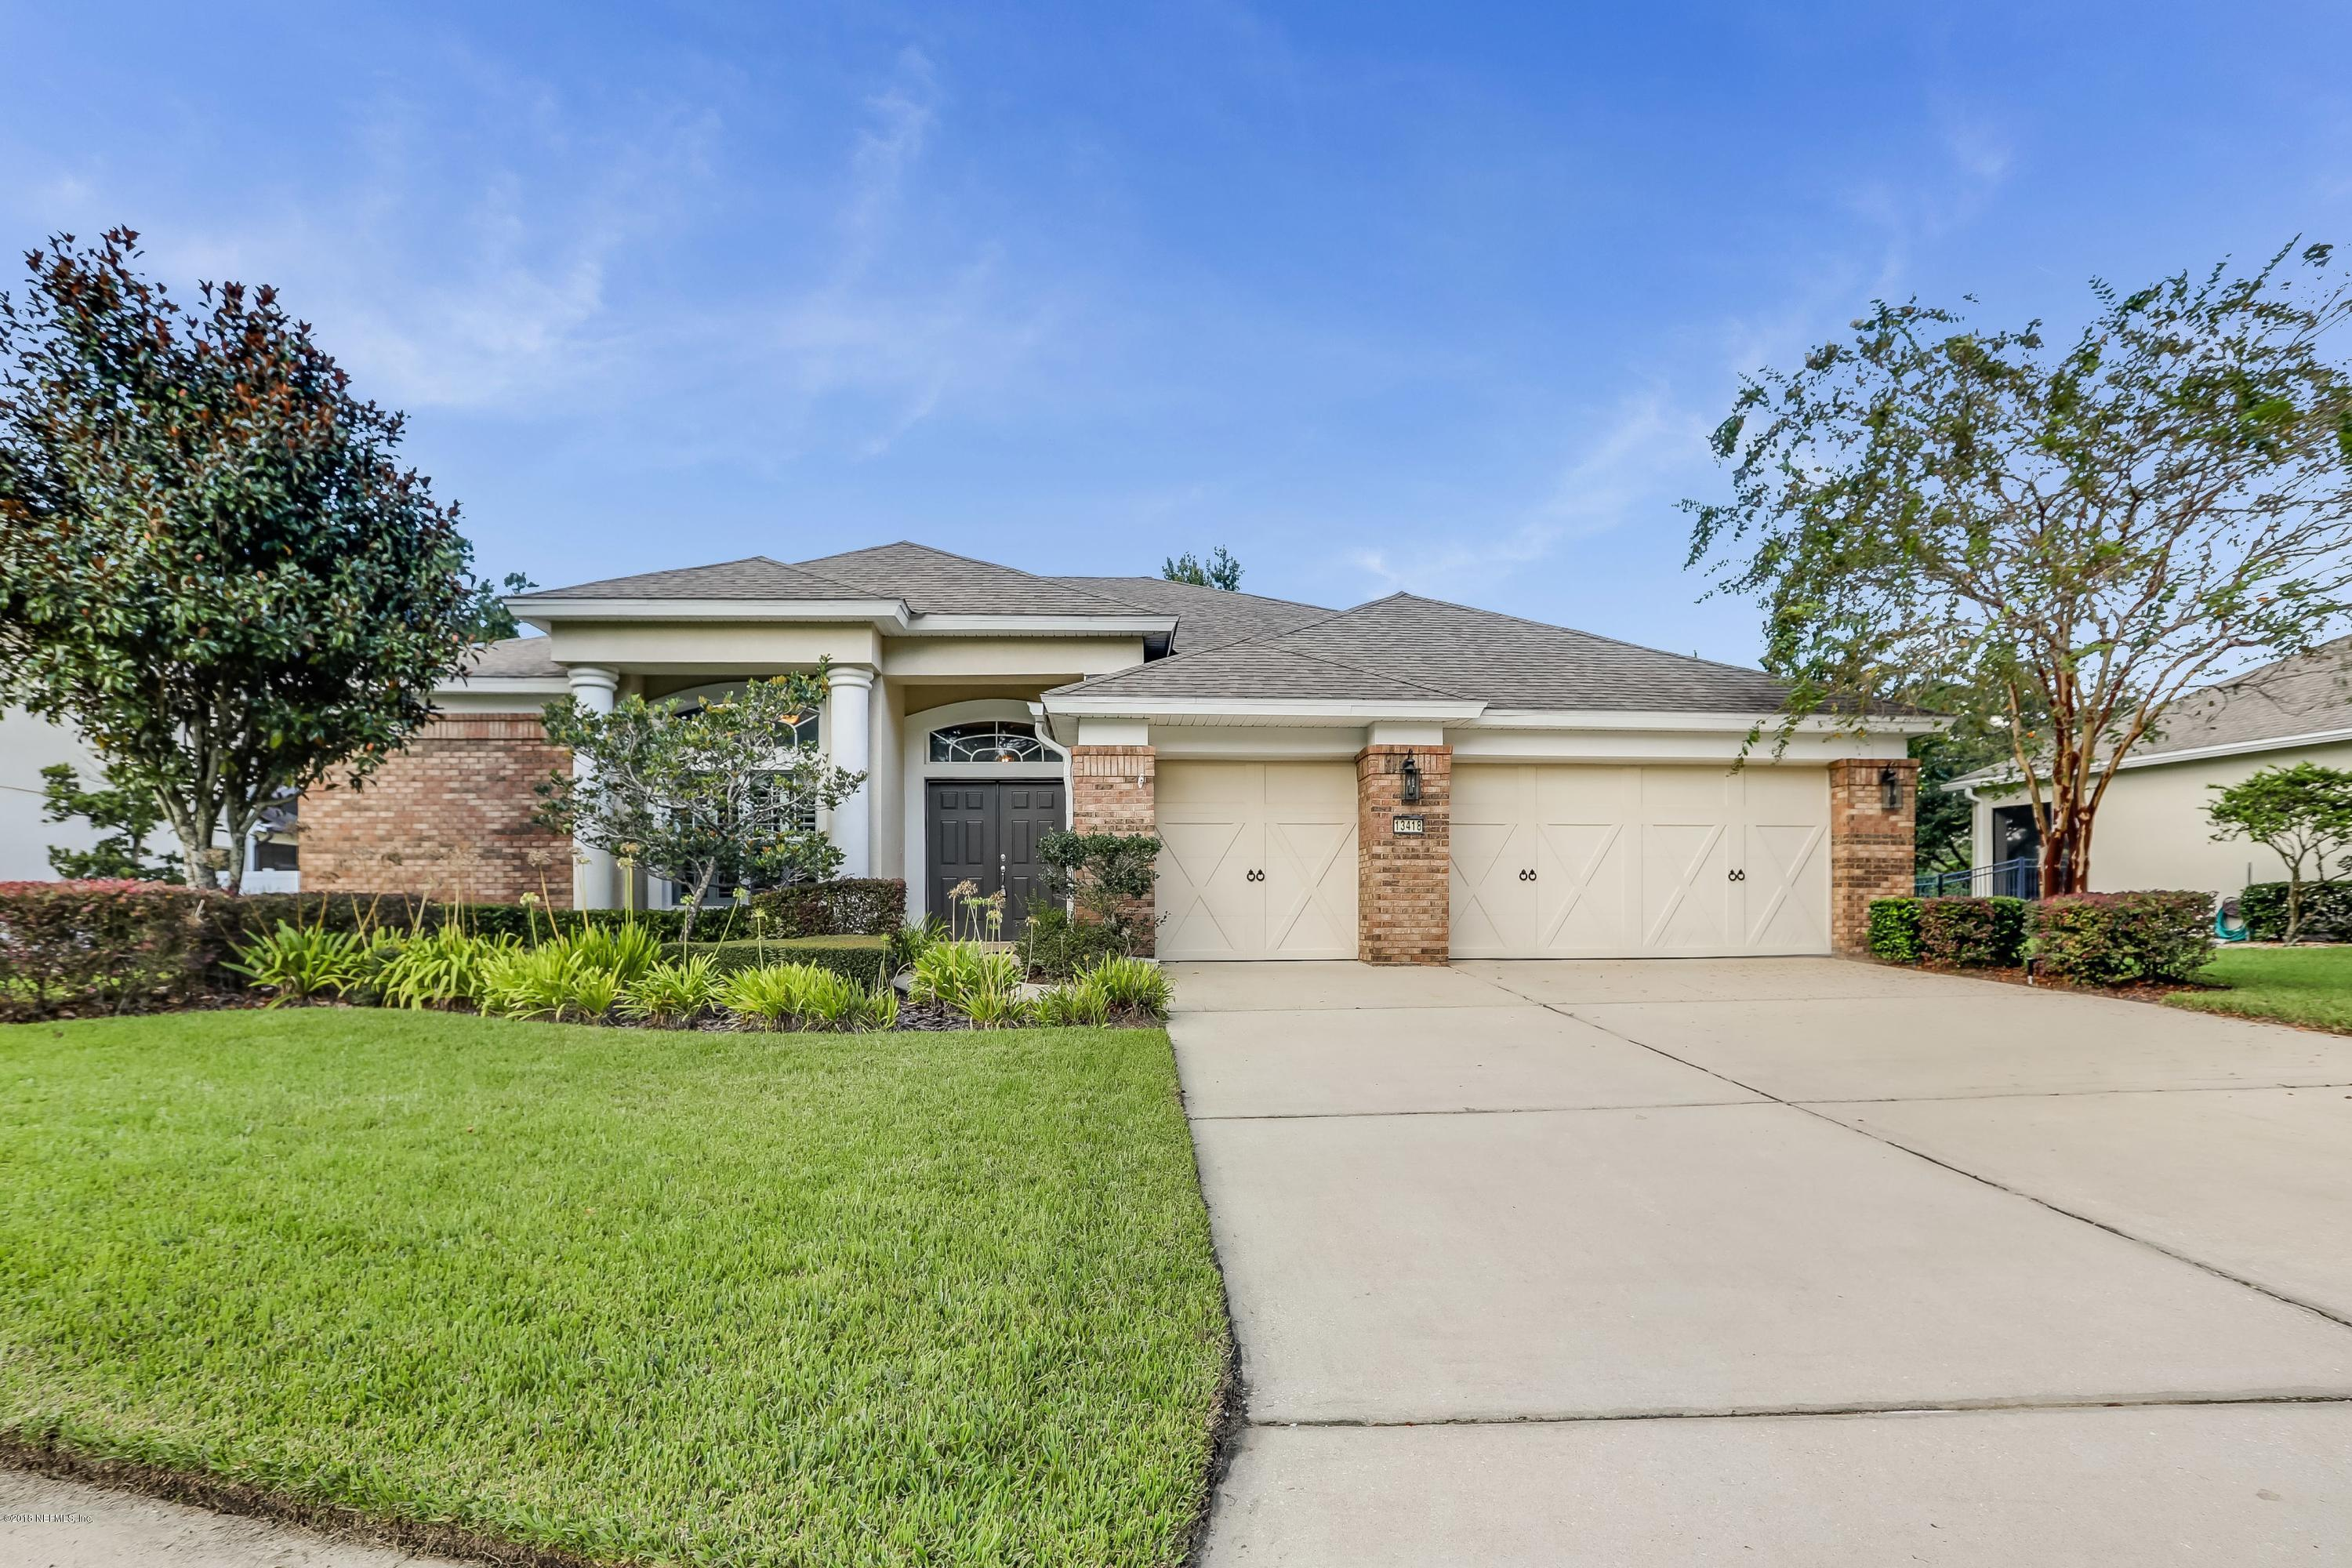 13418 LONG CYPRESS, JACKSONVILLE, FLORIDA 32223, 5 Bedrooms Bedrooms, ,3 BathroomsBathrooms,Residential - single family,For sale,LONG CYPRESS,957494